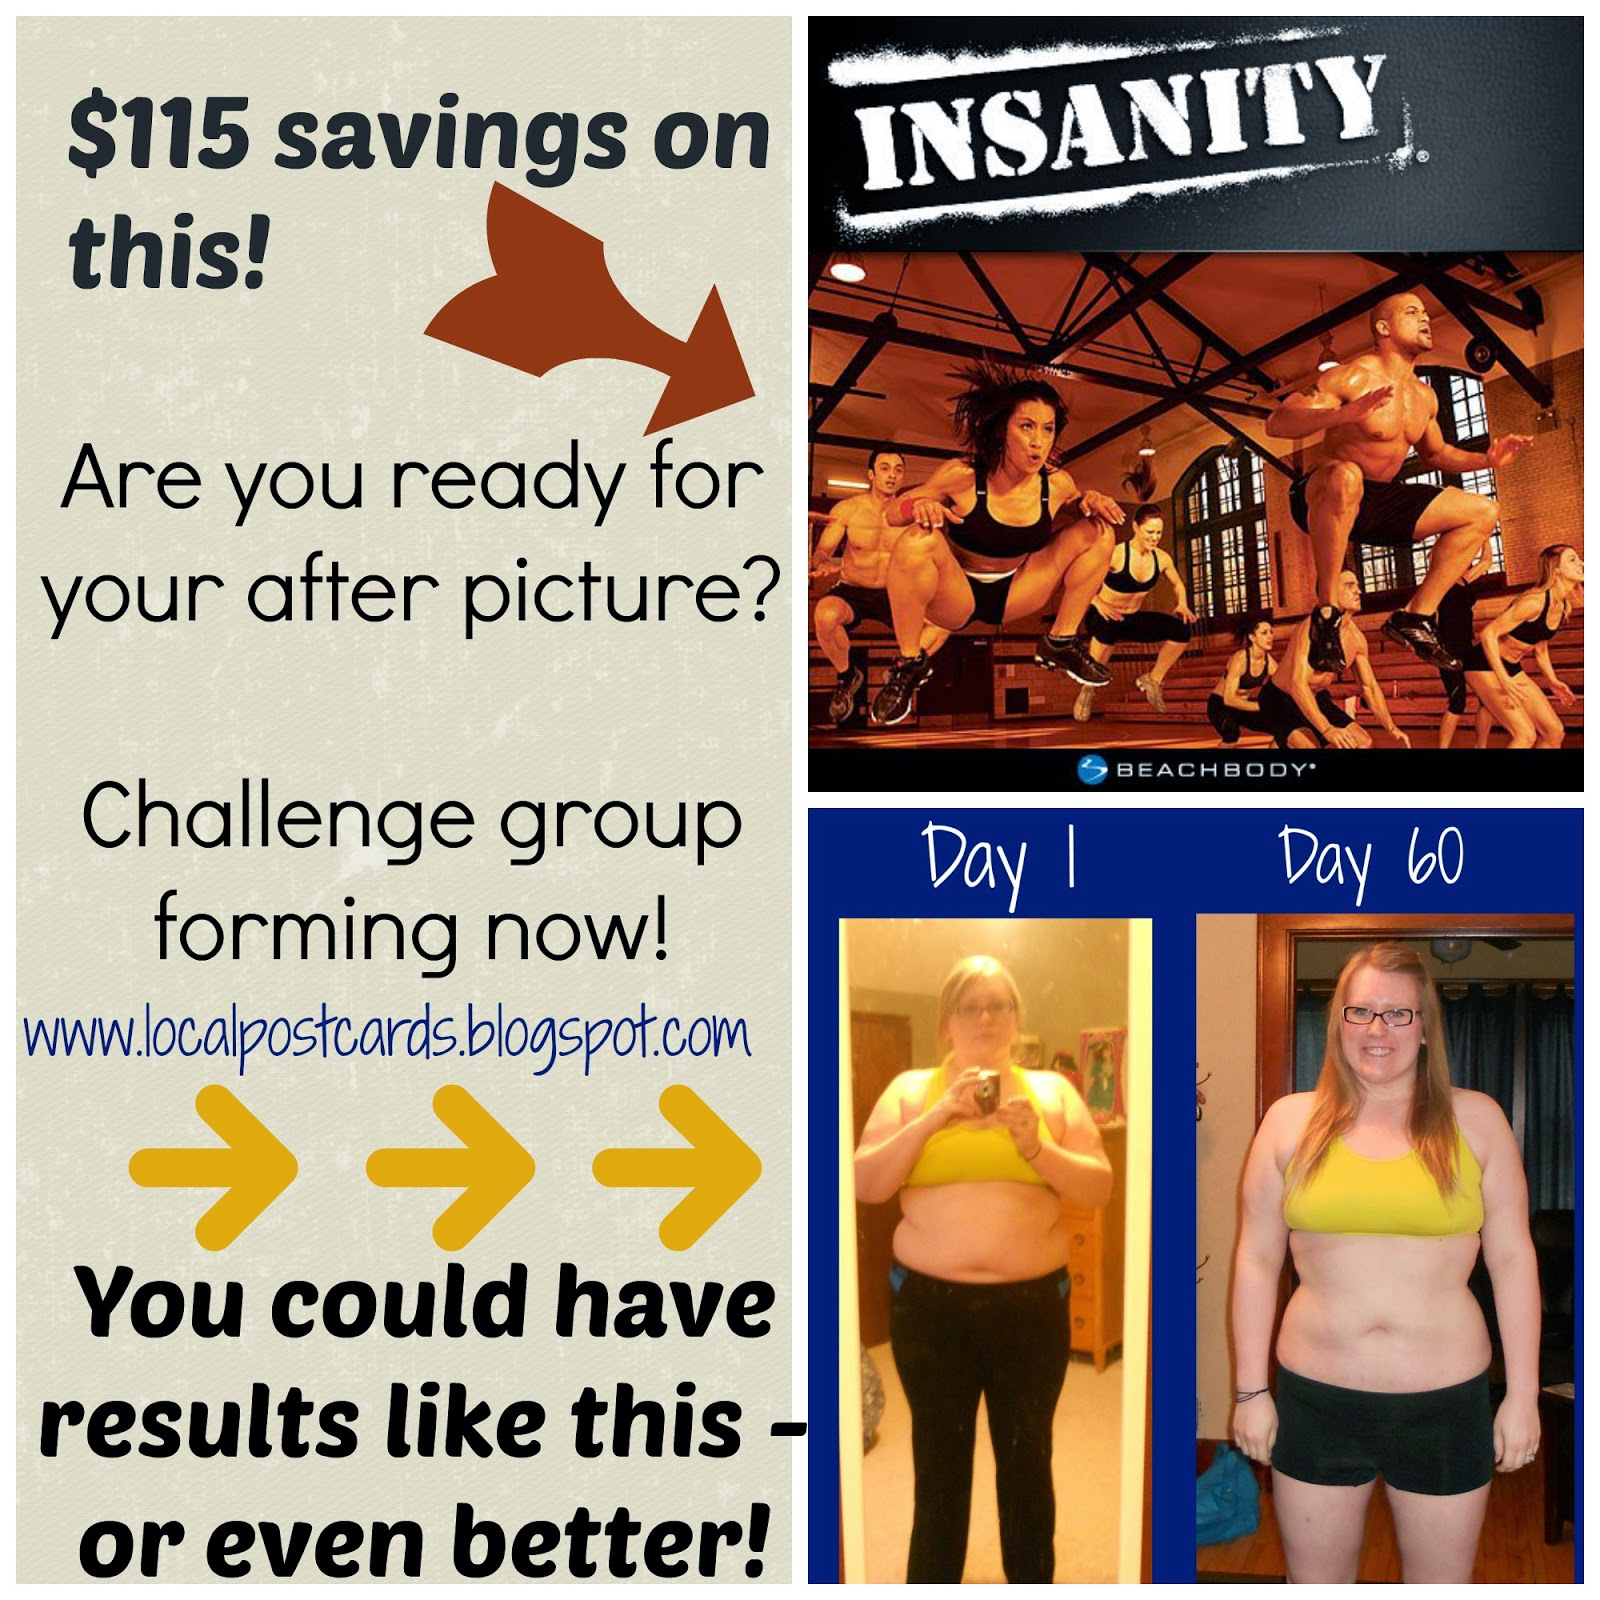 Insanity Challenge Group